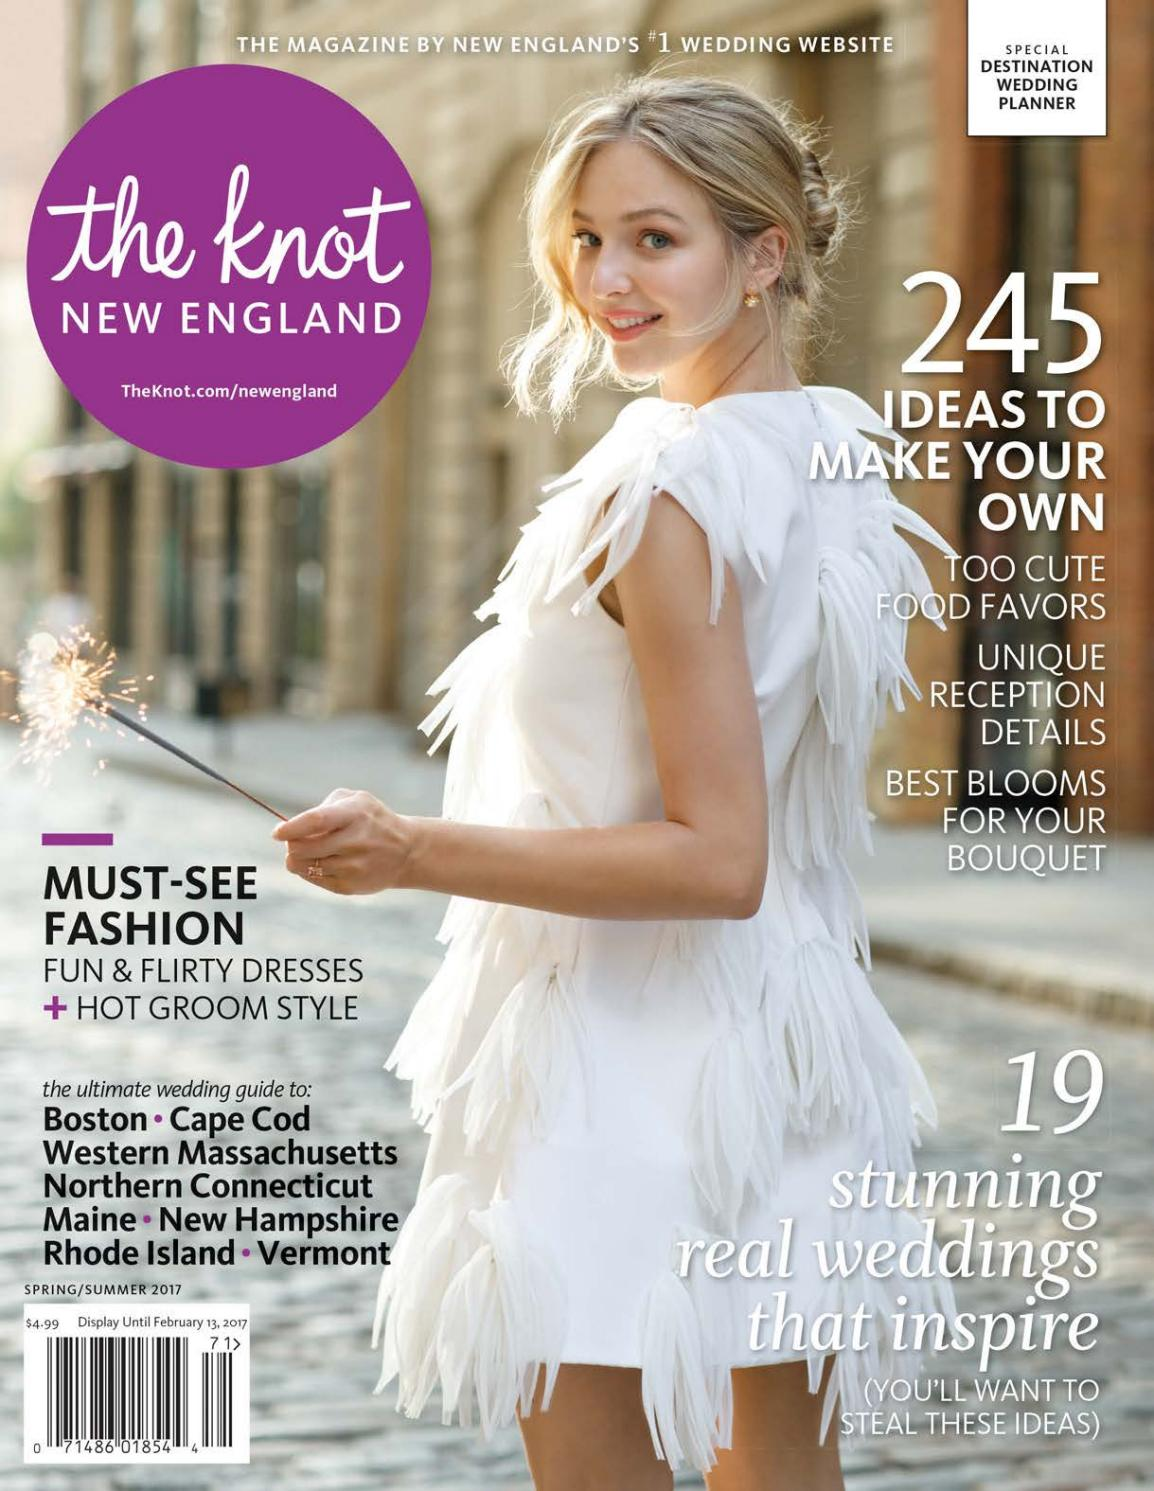 The Knot New England Spring Summer 2017 by The Knot New England - issuu 7c5c37a3a77